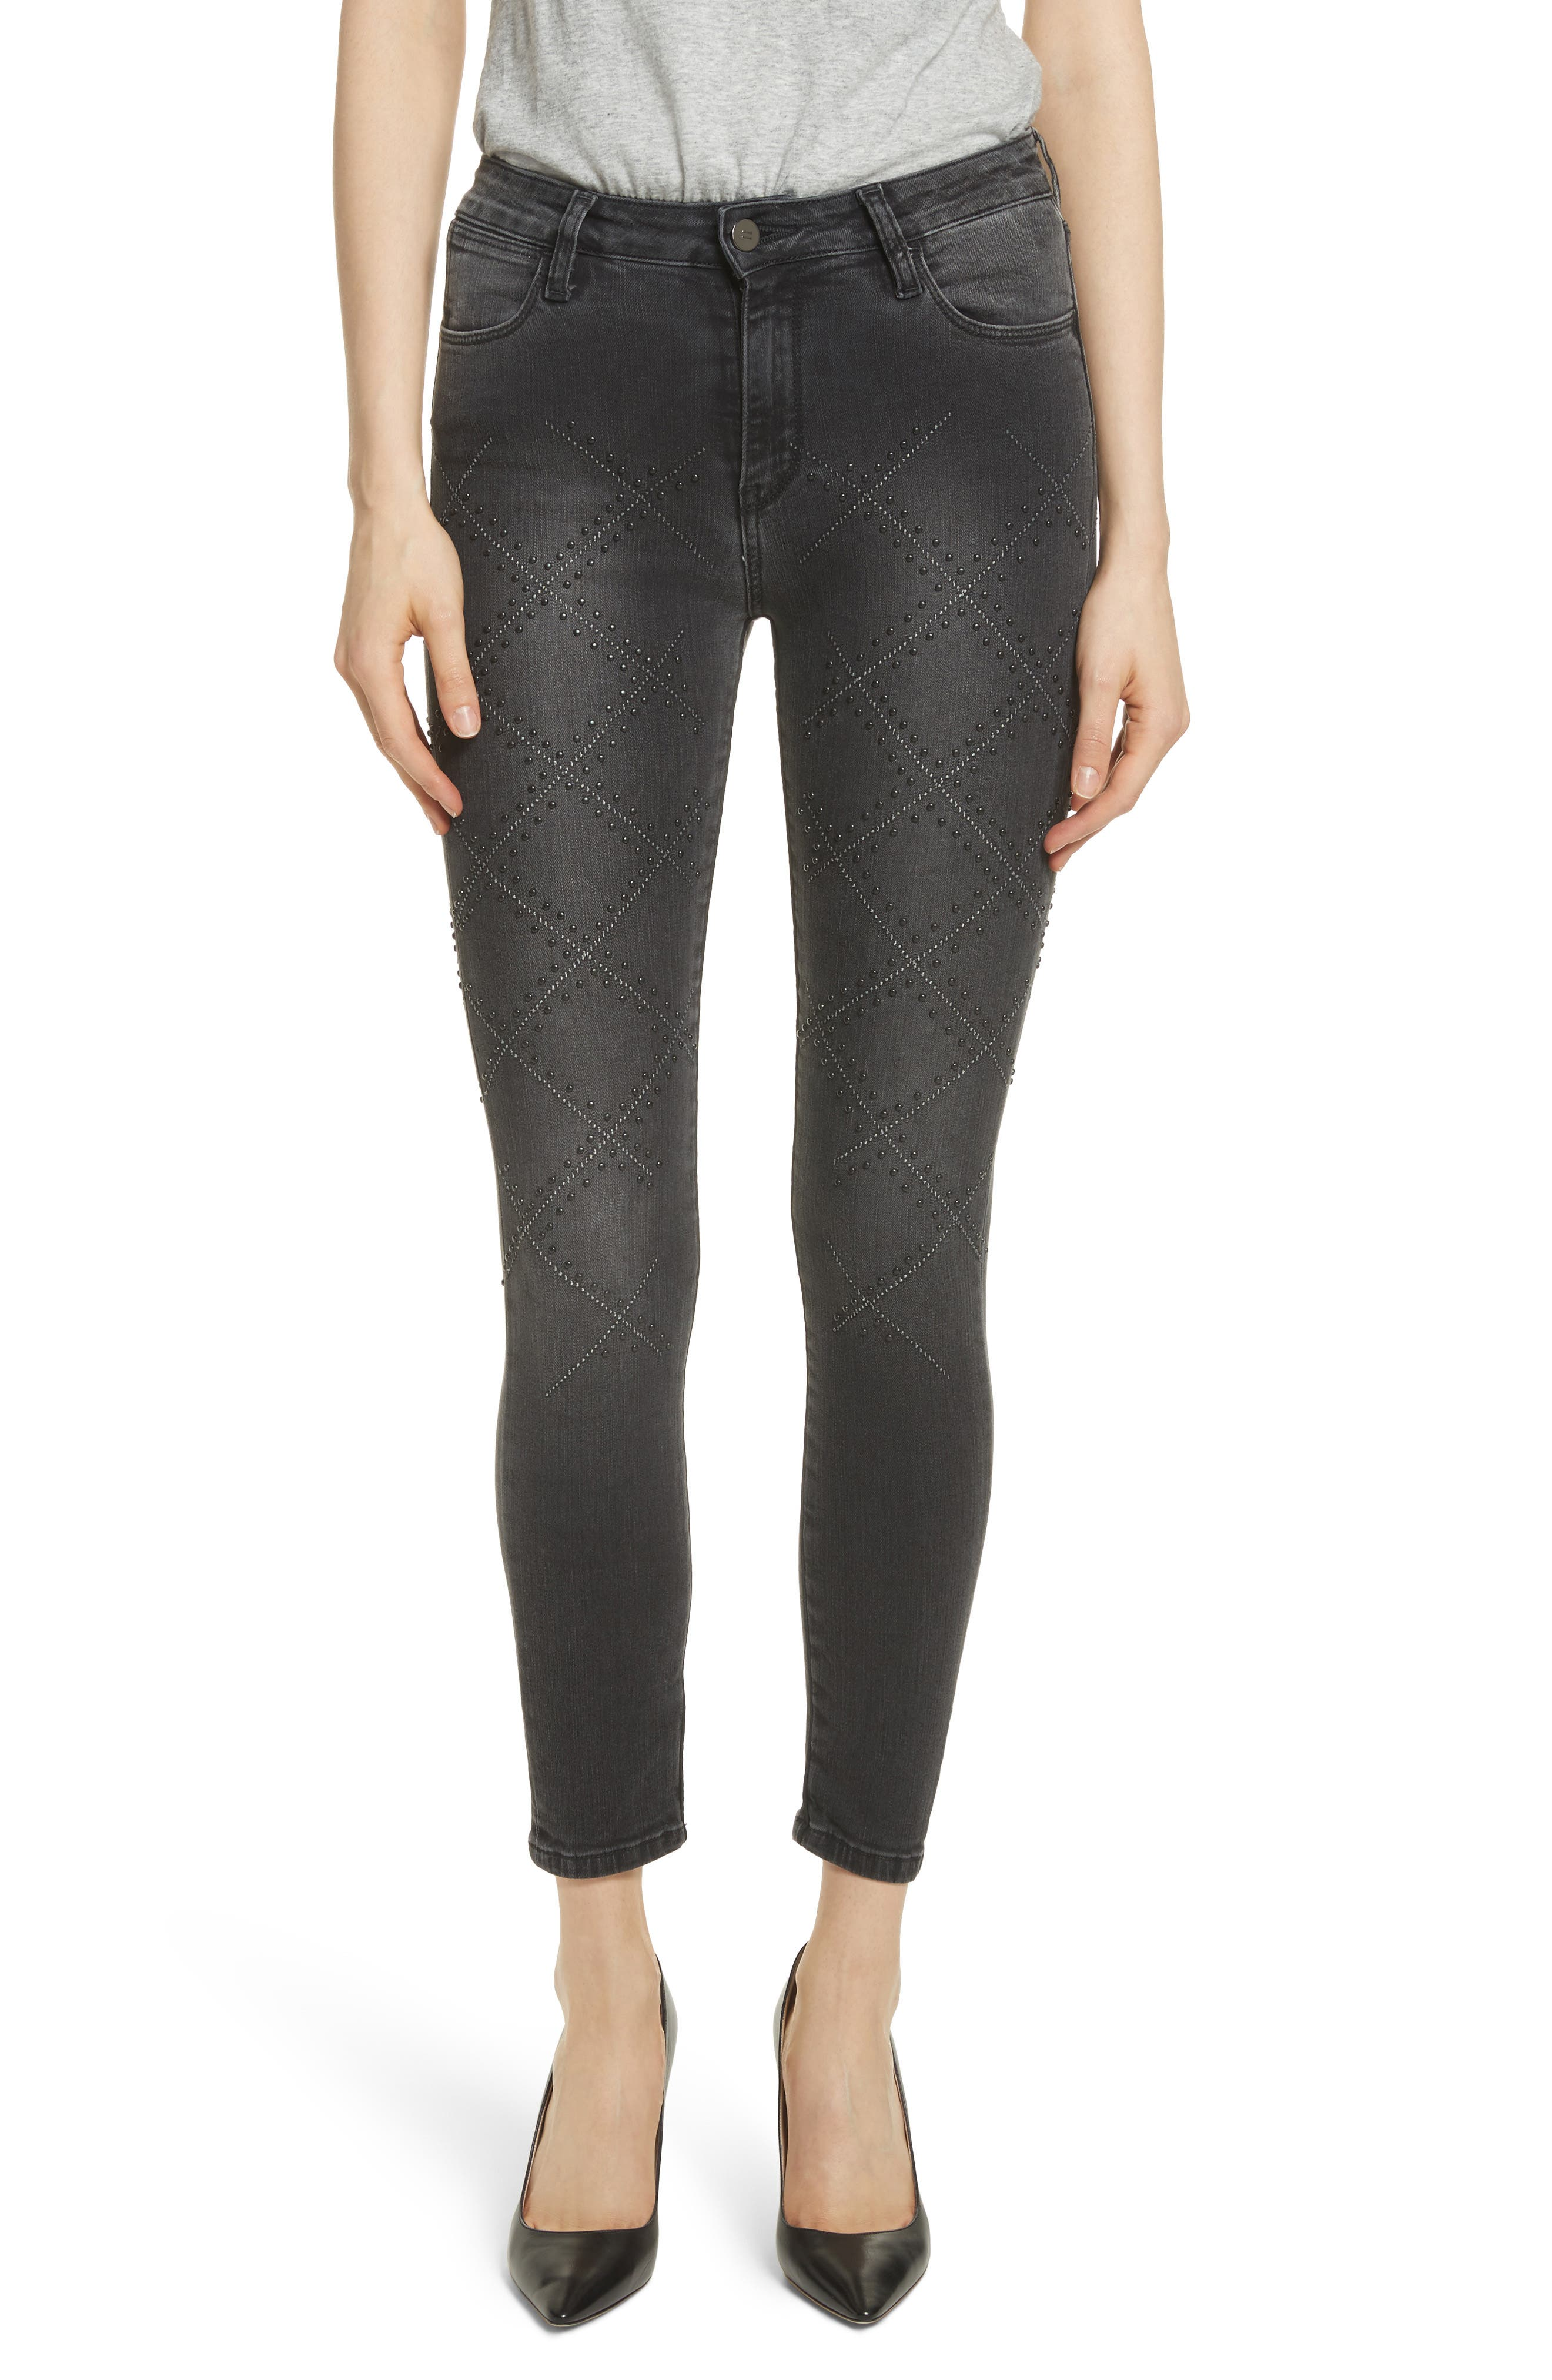 Reina Stud Skinny Jeans,                         Main,                         color, Black Used